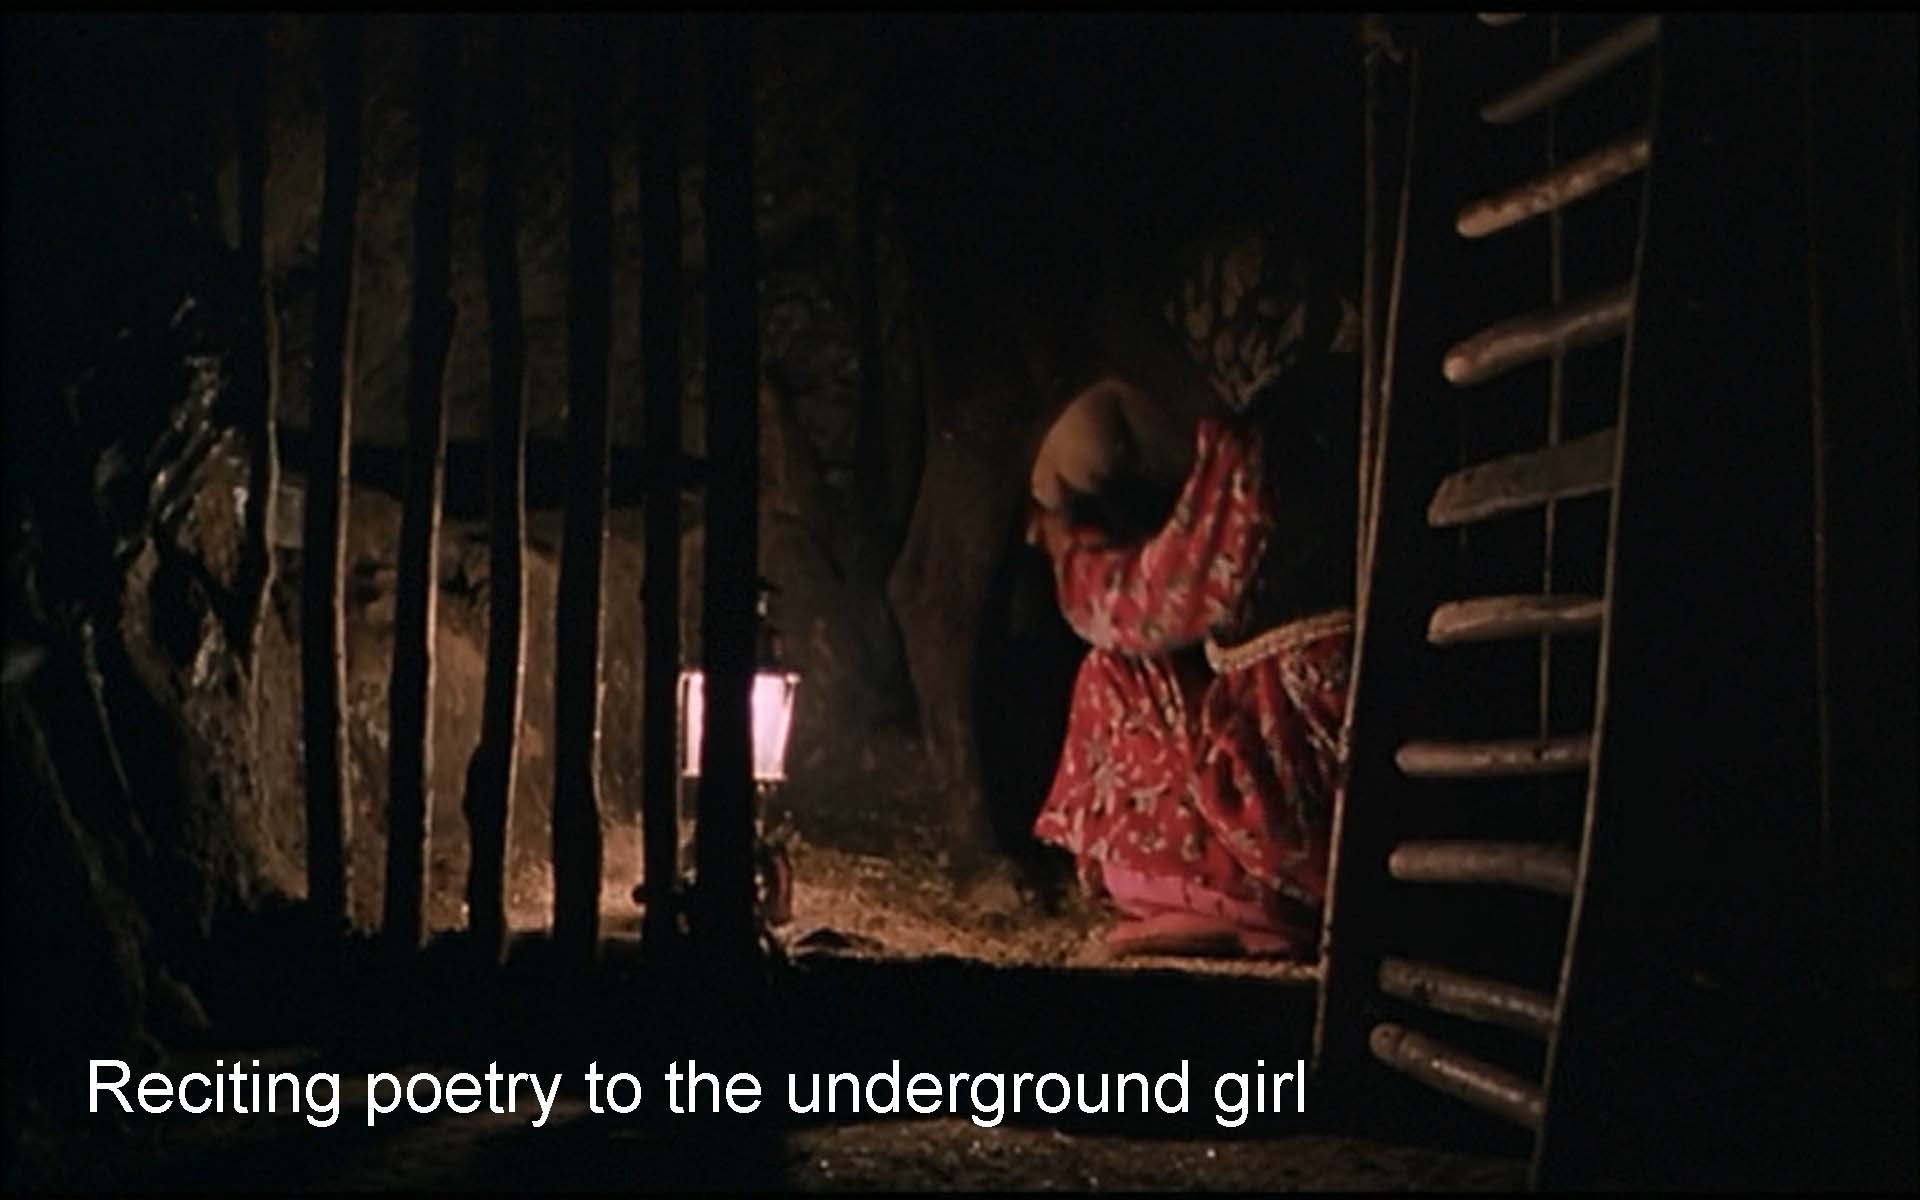 Reciting poetry to the underground girl